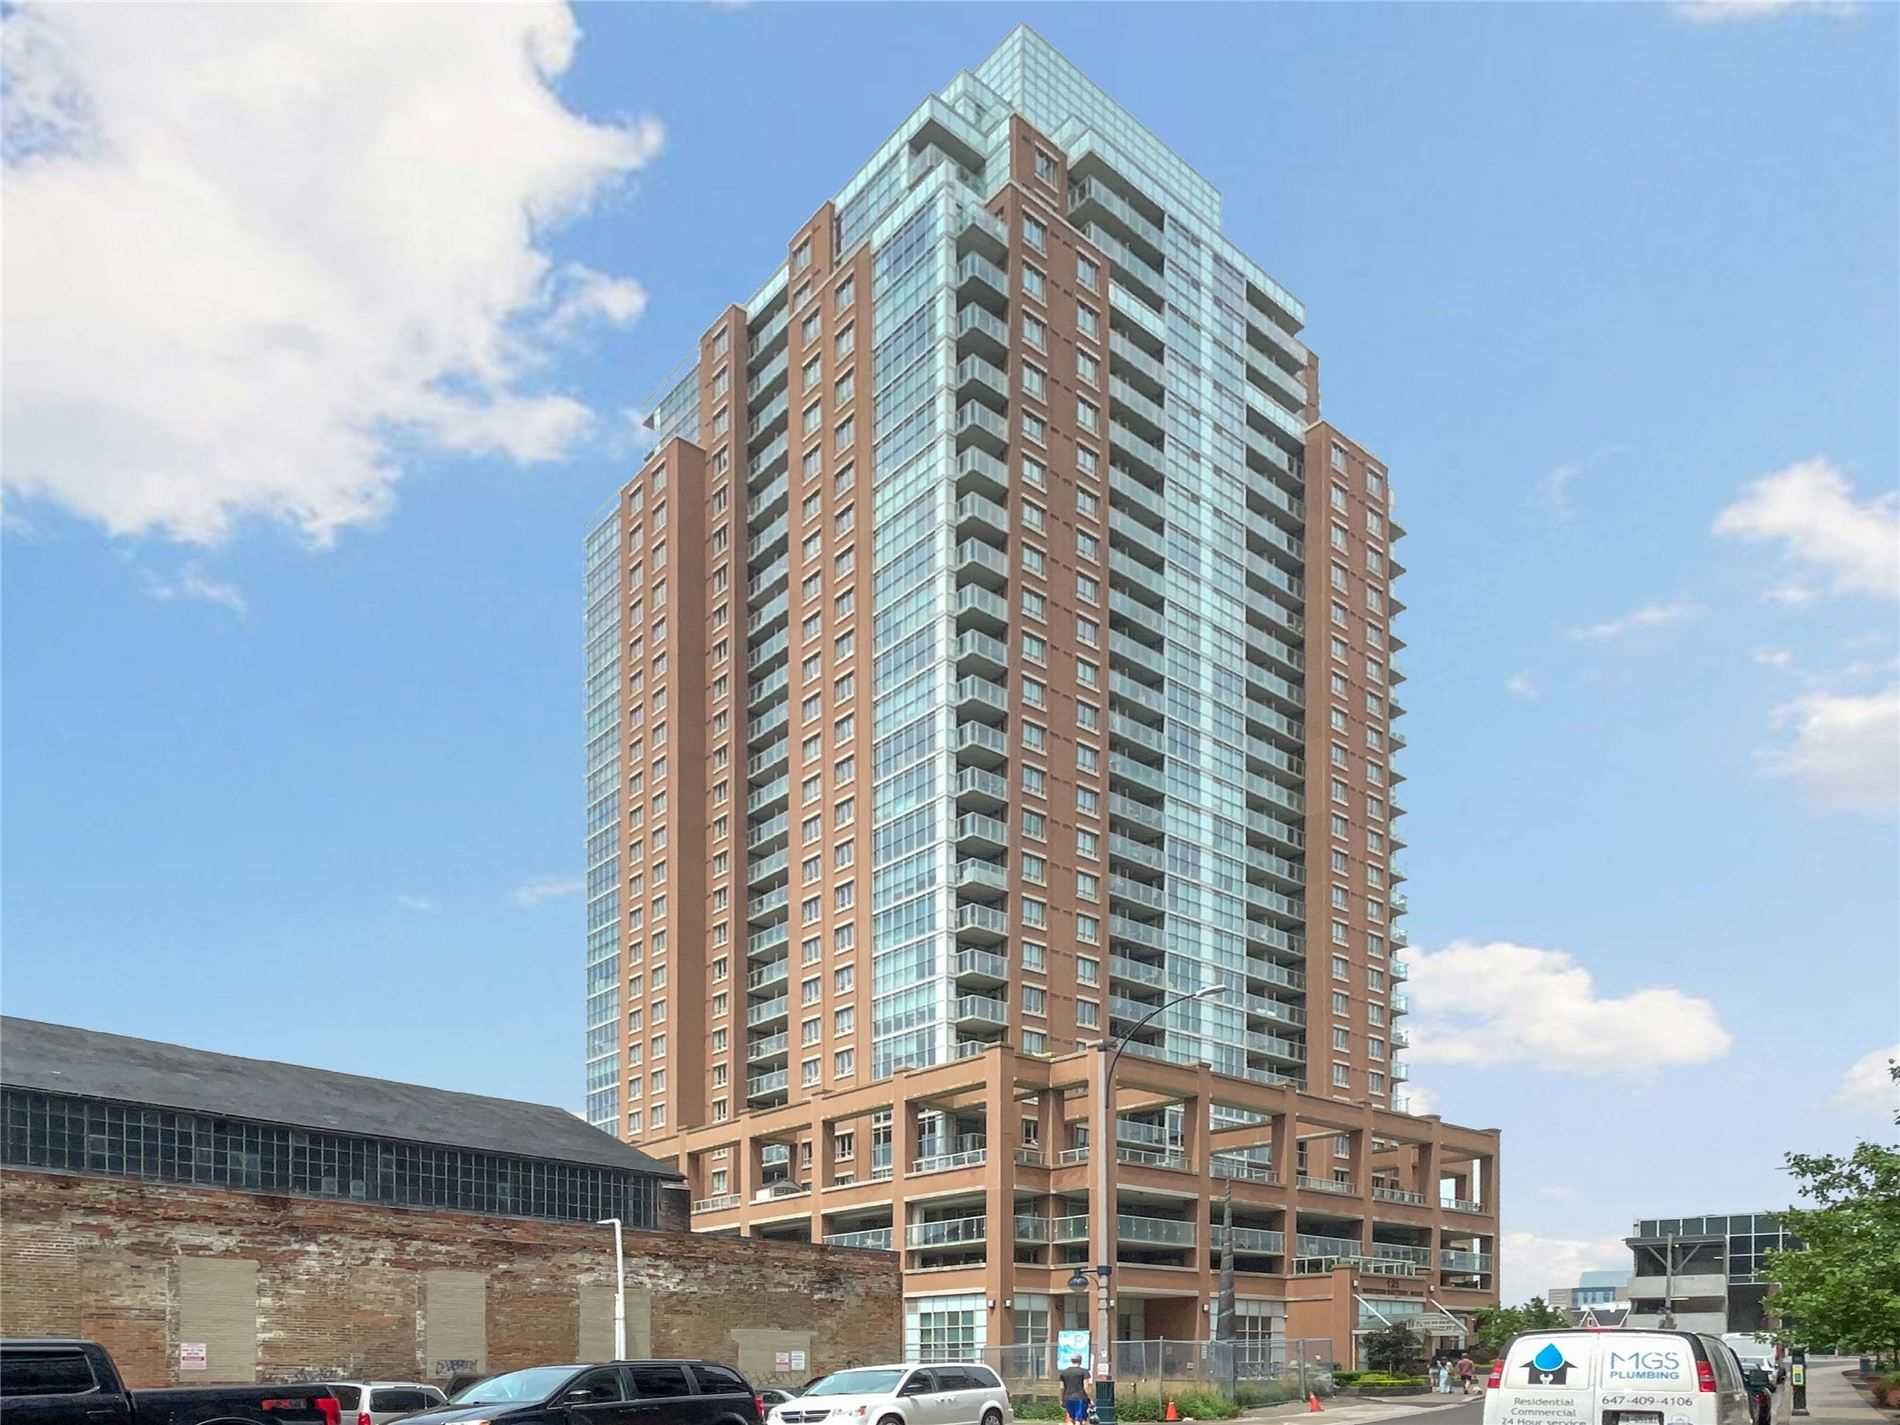 125 Western Battery Rd, unit 2710 for sale in Toronto - image #2